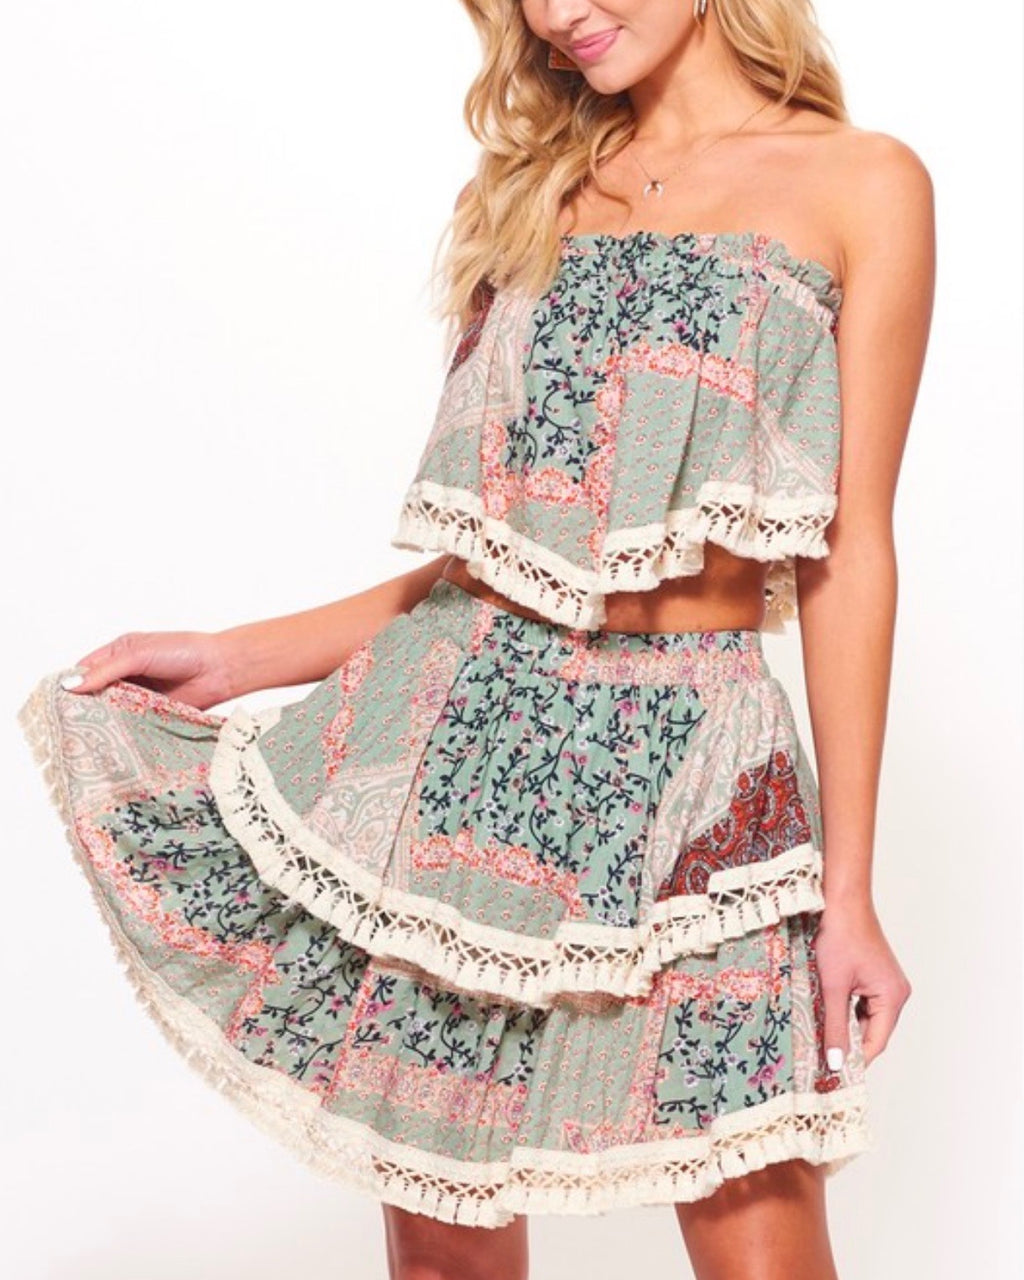 Paisley Printed Strapless Top Skirt Set with Tassel Trim in Olive